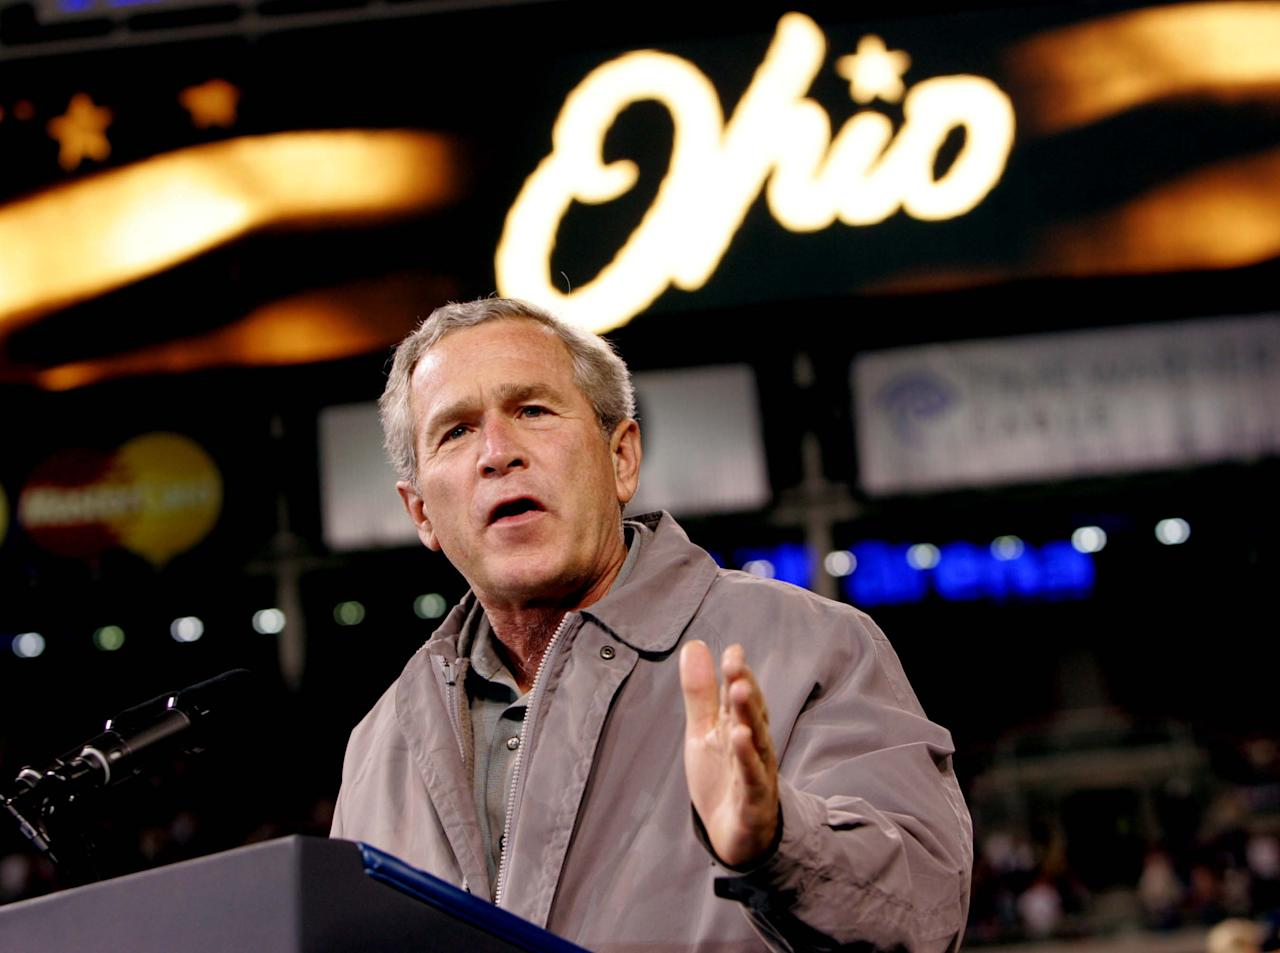 FILE - This Oct. 31, 2004 file photo shows President George W. Bush speaking to supporters at a campaign rally at the Great American Ball Park, in Cincinnati. Ohio is the presidential race's undisputed epicenter, and it's tilting toward Barack Obama. The revival of the local economy and the popularity of Obama's auto industry bailout are hampering Mitt Romney's call for Ohioans to return to the GOP-leaning ways that were crucial to George W. Bush. (AP Photo/Pablo Martinez Monsivais, File)